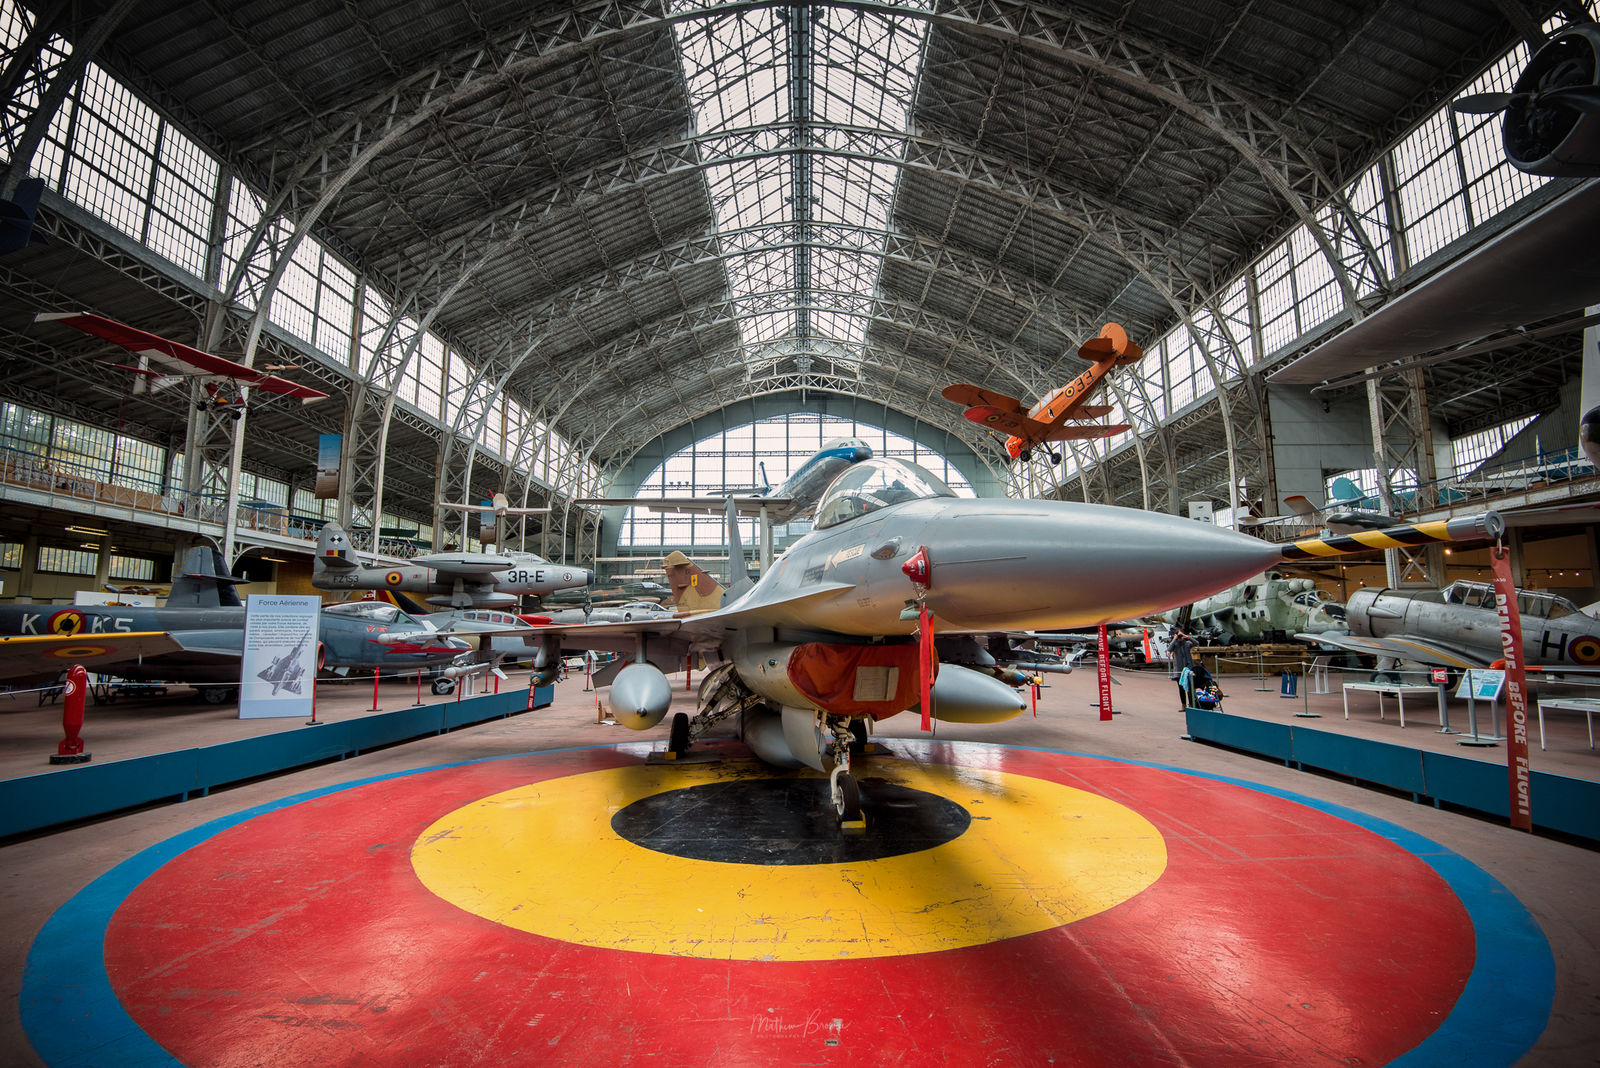 Royal Museum of the Armed Forces and Military History - Brussels, Belgium